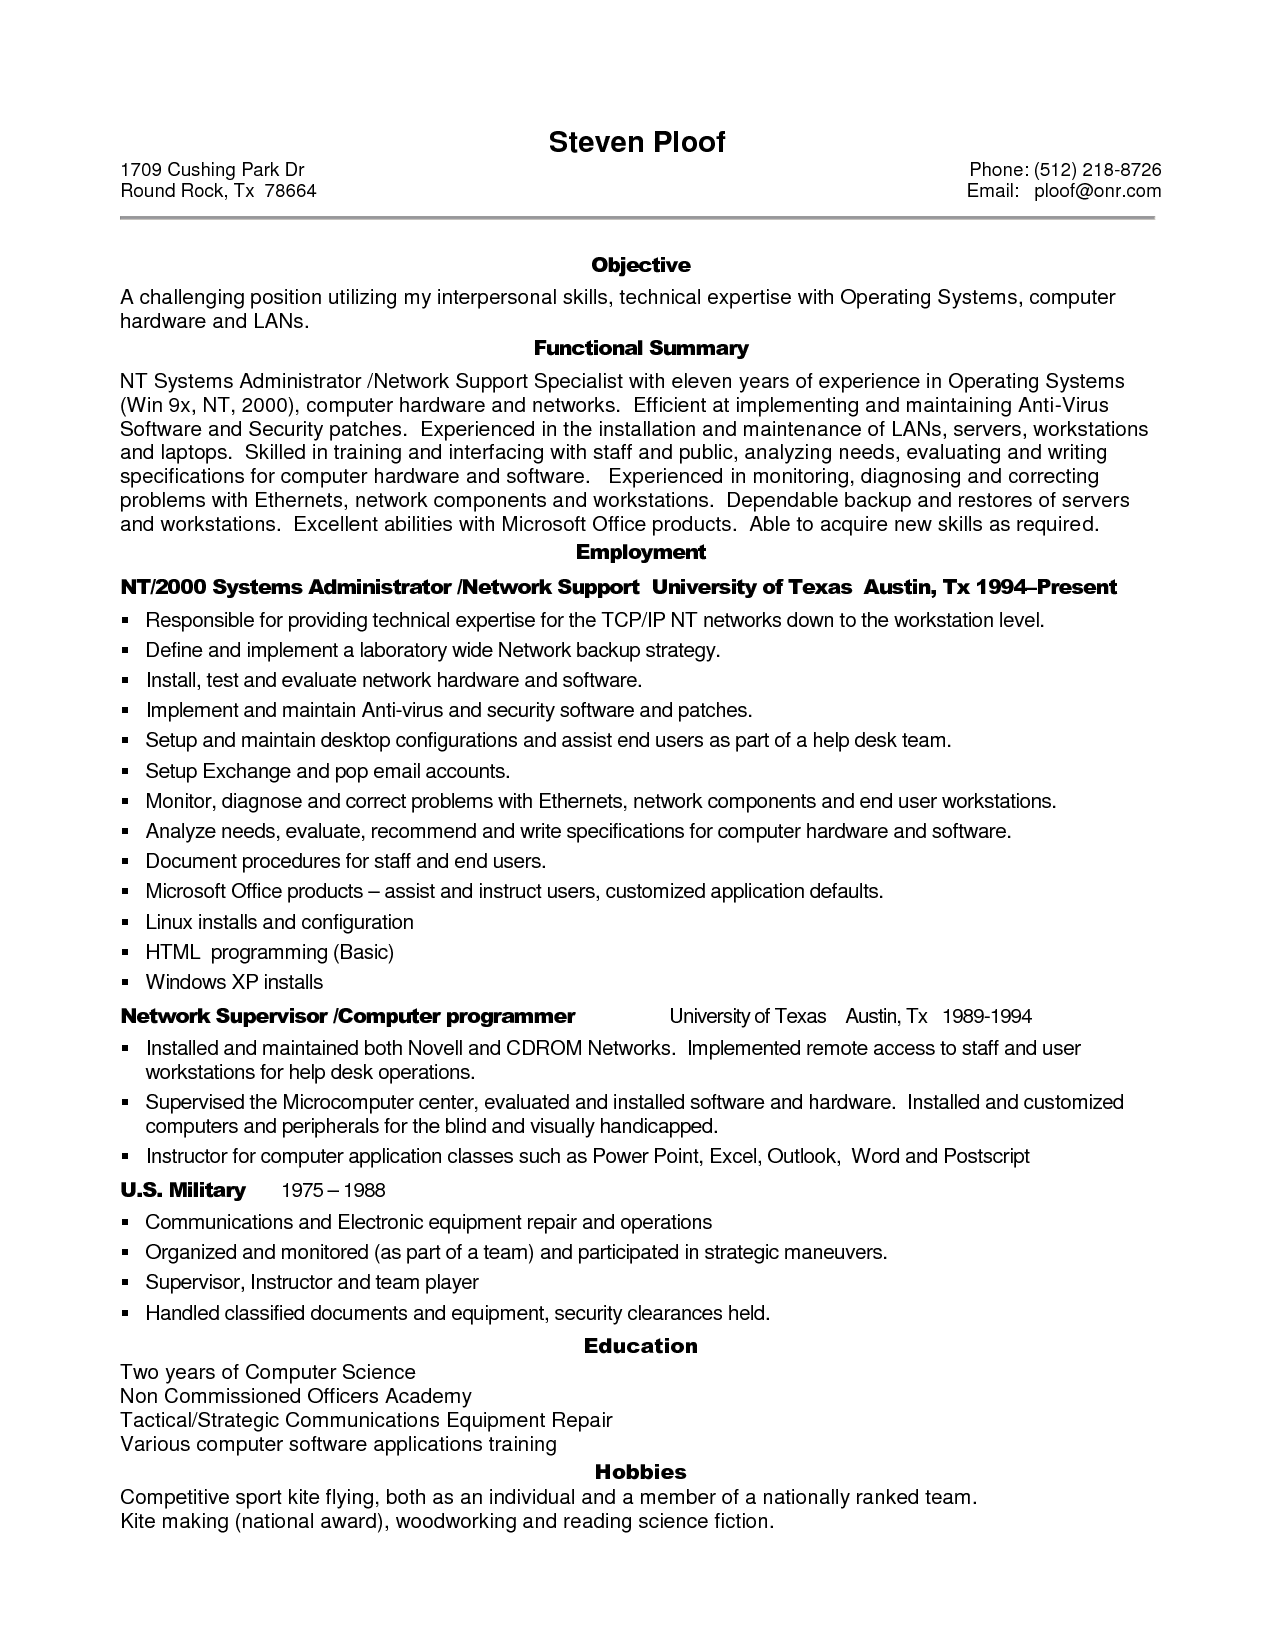 Resume Templates For It Professionals Sample Resume For Experienced It Professional Sample Resume For